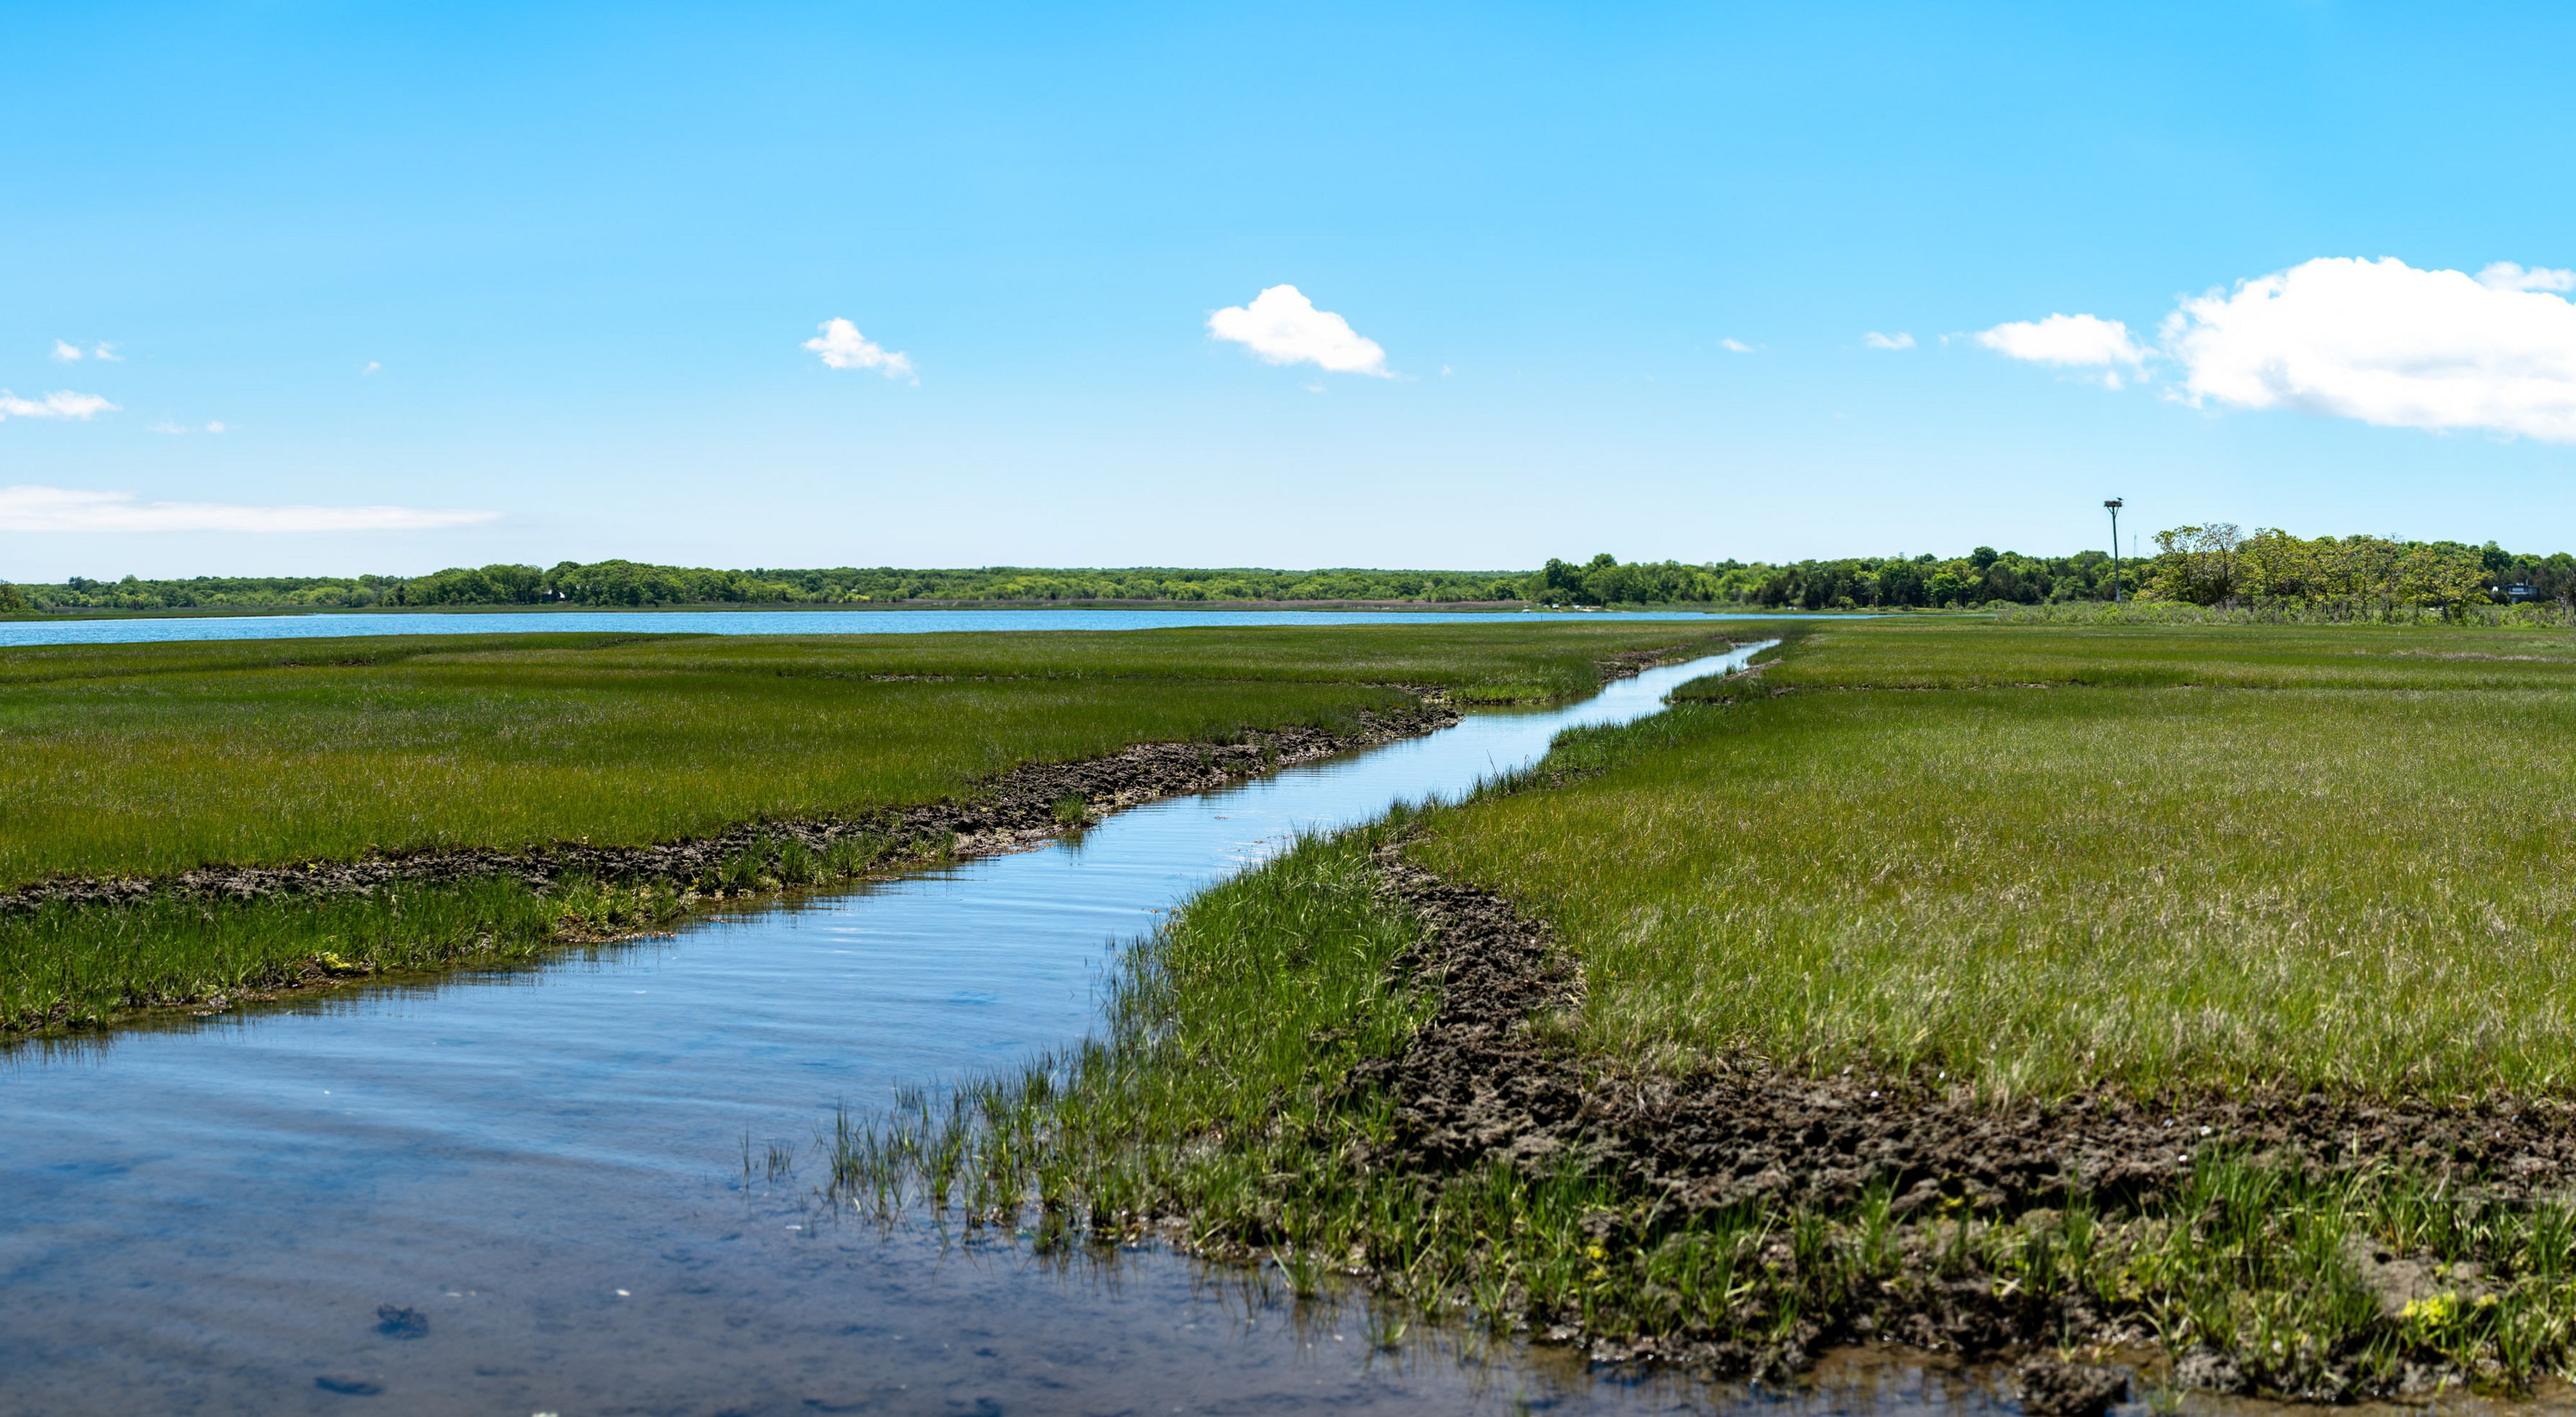 A narrow stream meanders through a bright green salt marsh under blue skies with scattered clouds.